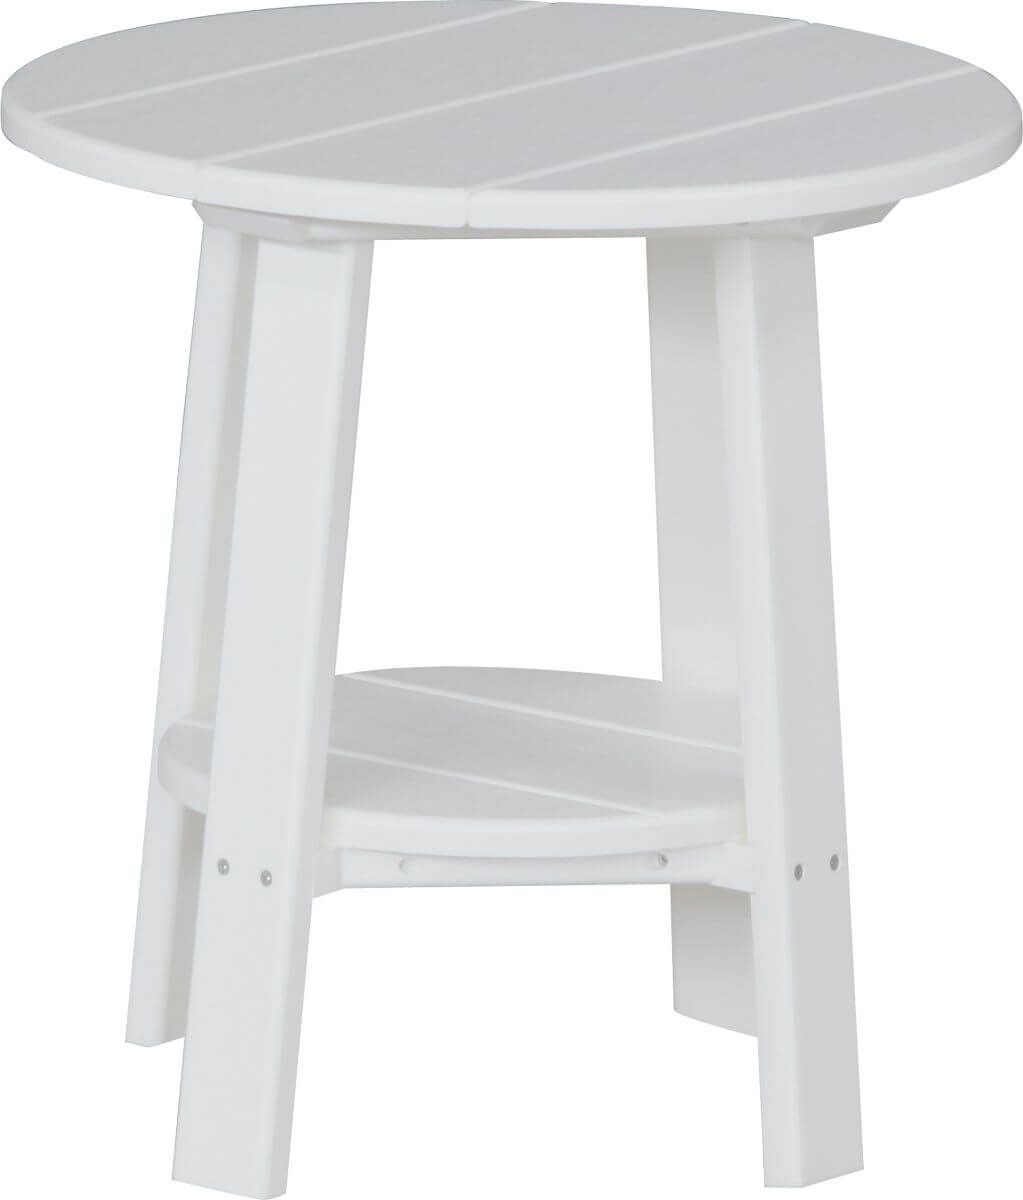 White Rockaway Outdoor Side Table